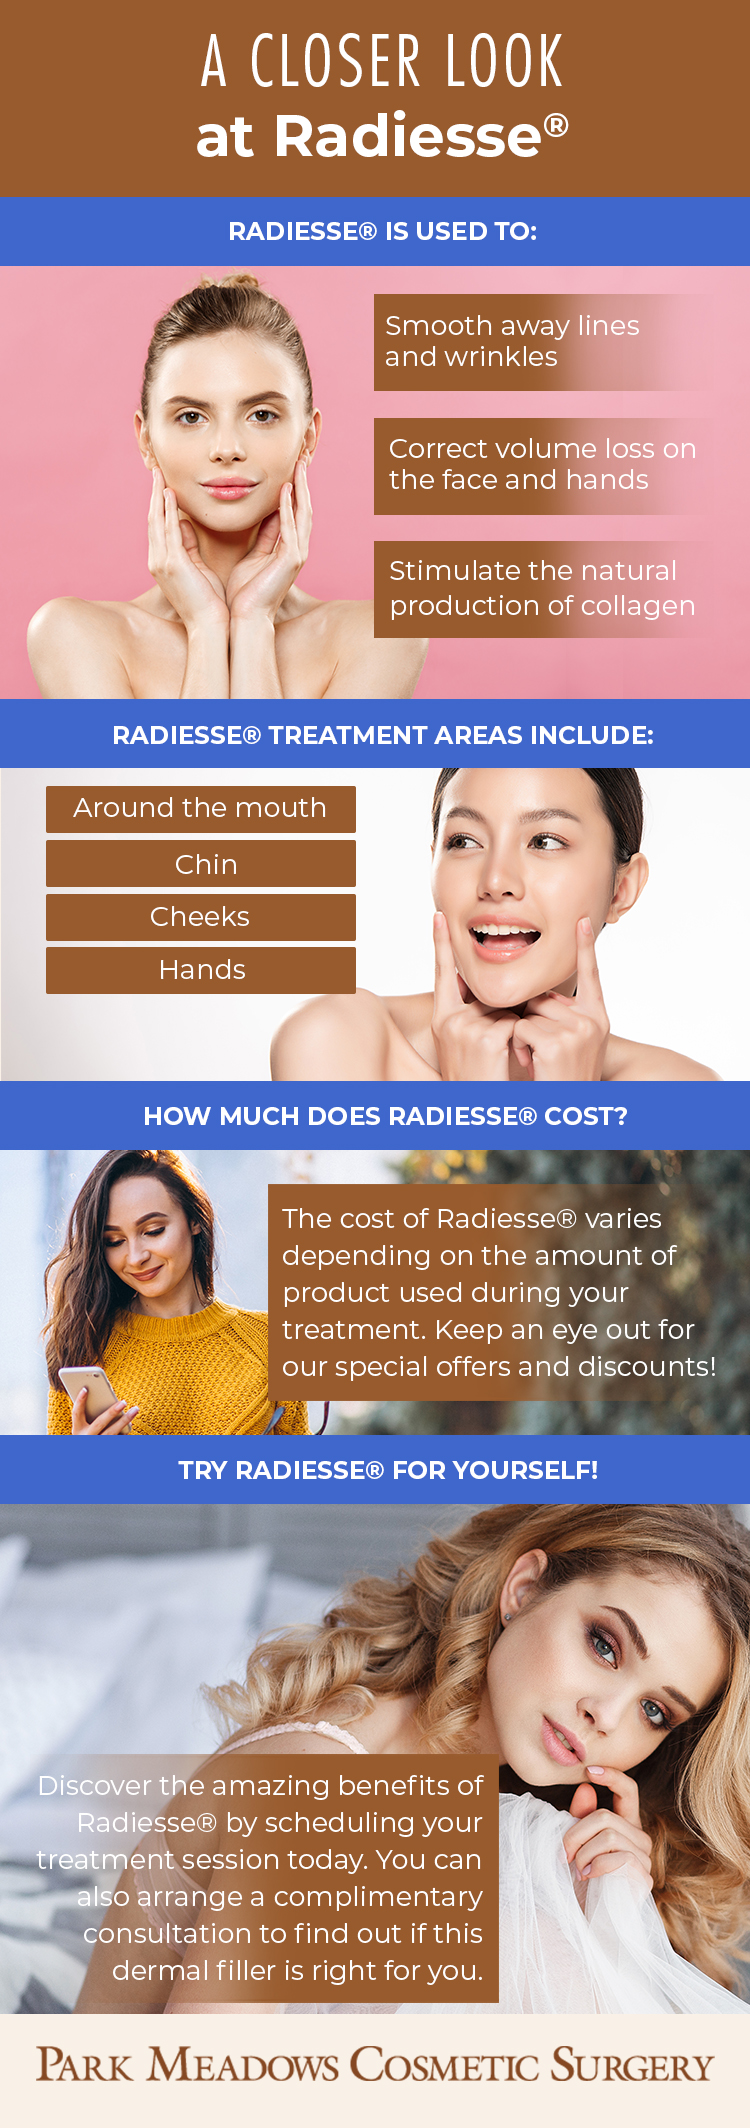 Radiesse infographic with Park Meadows Cosmetic Surgery